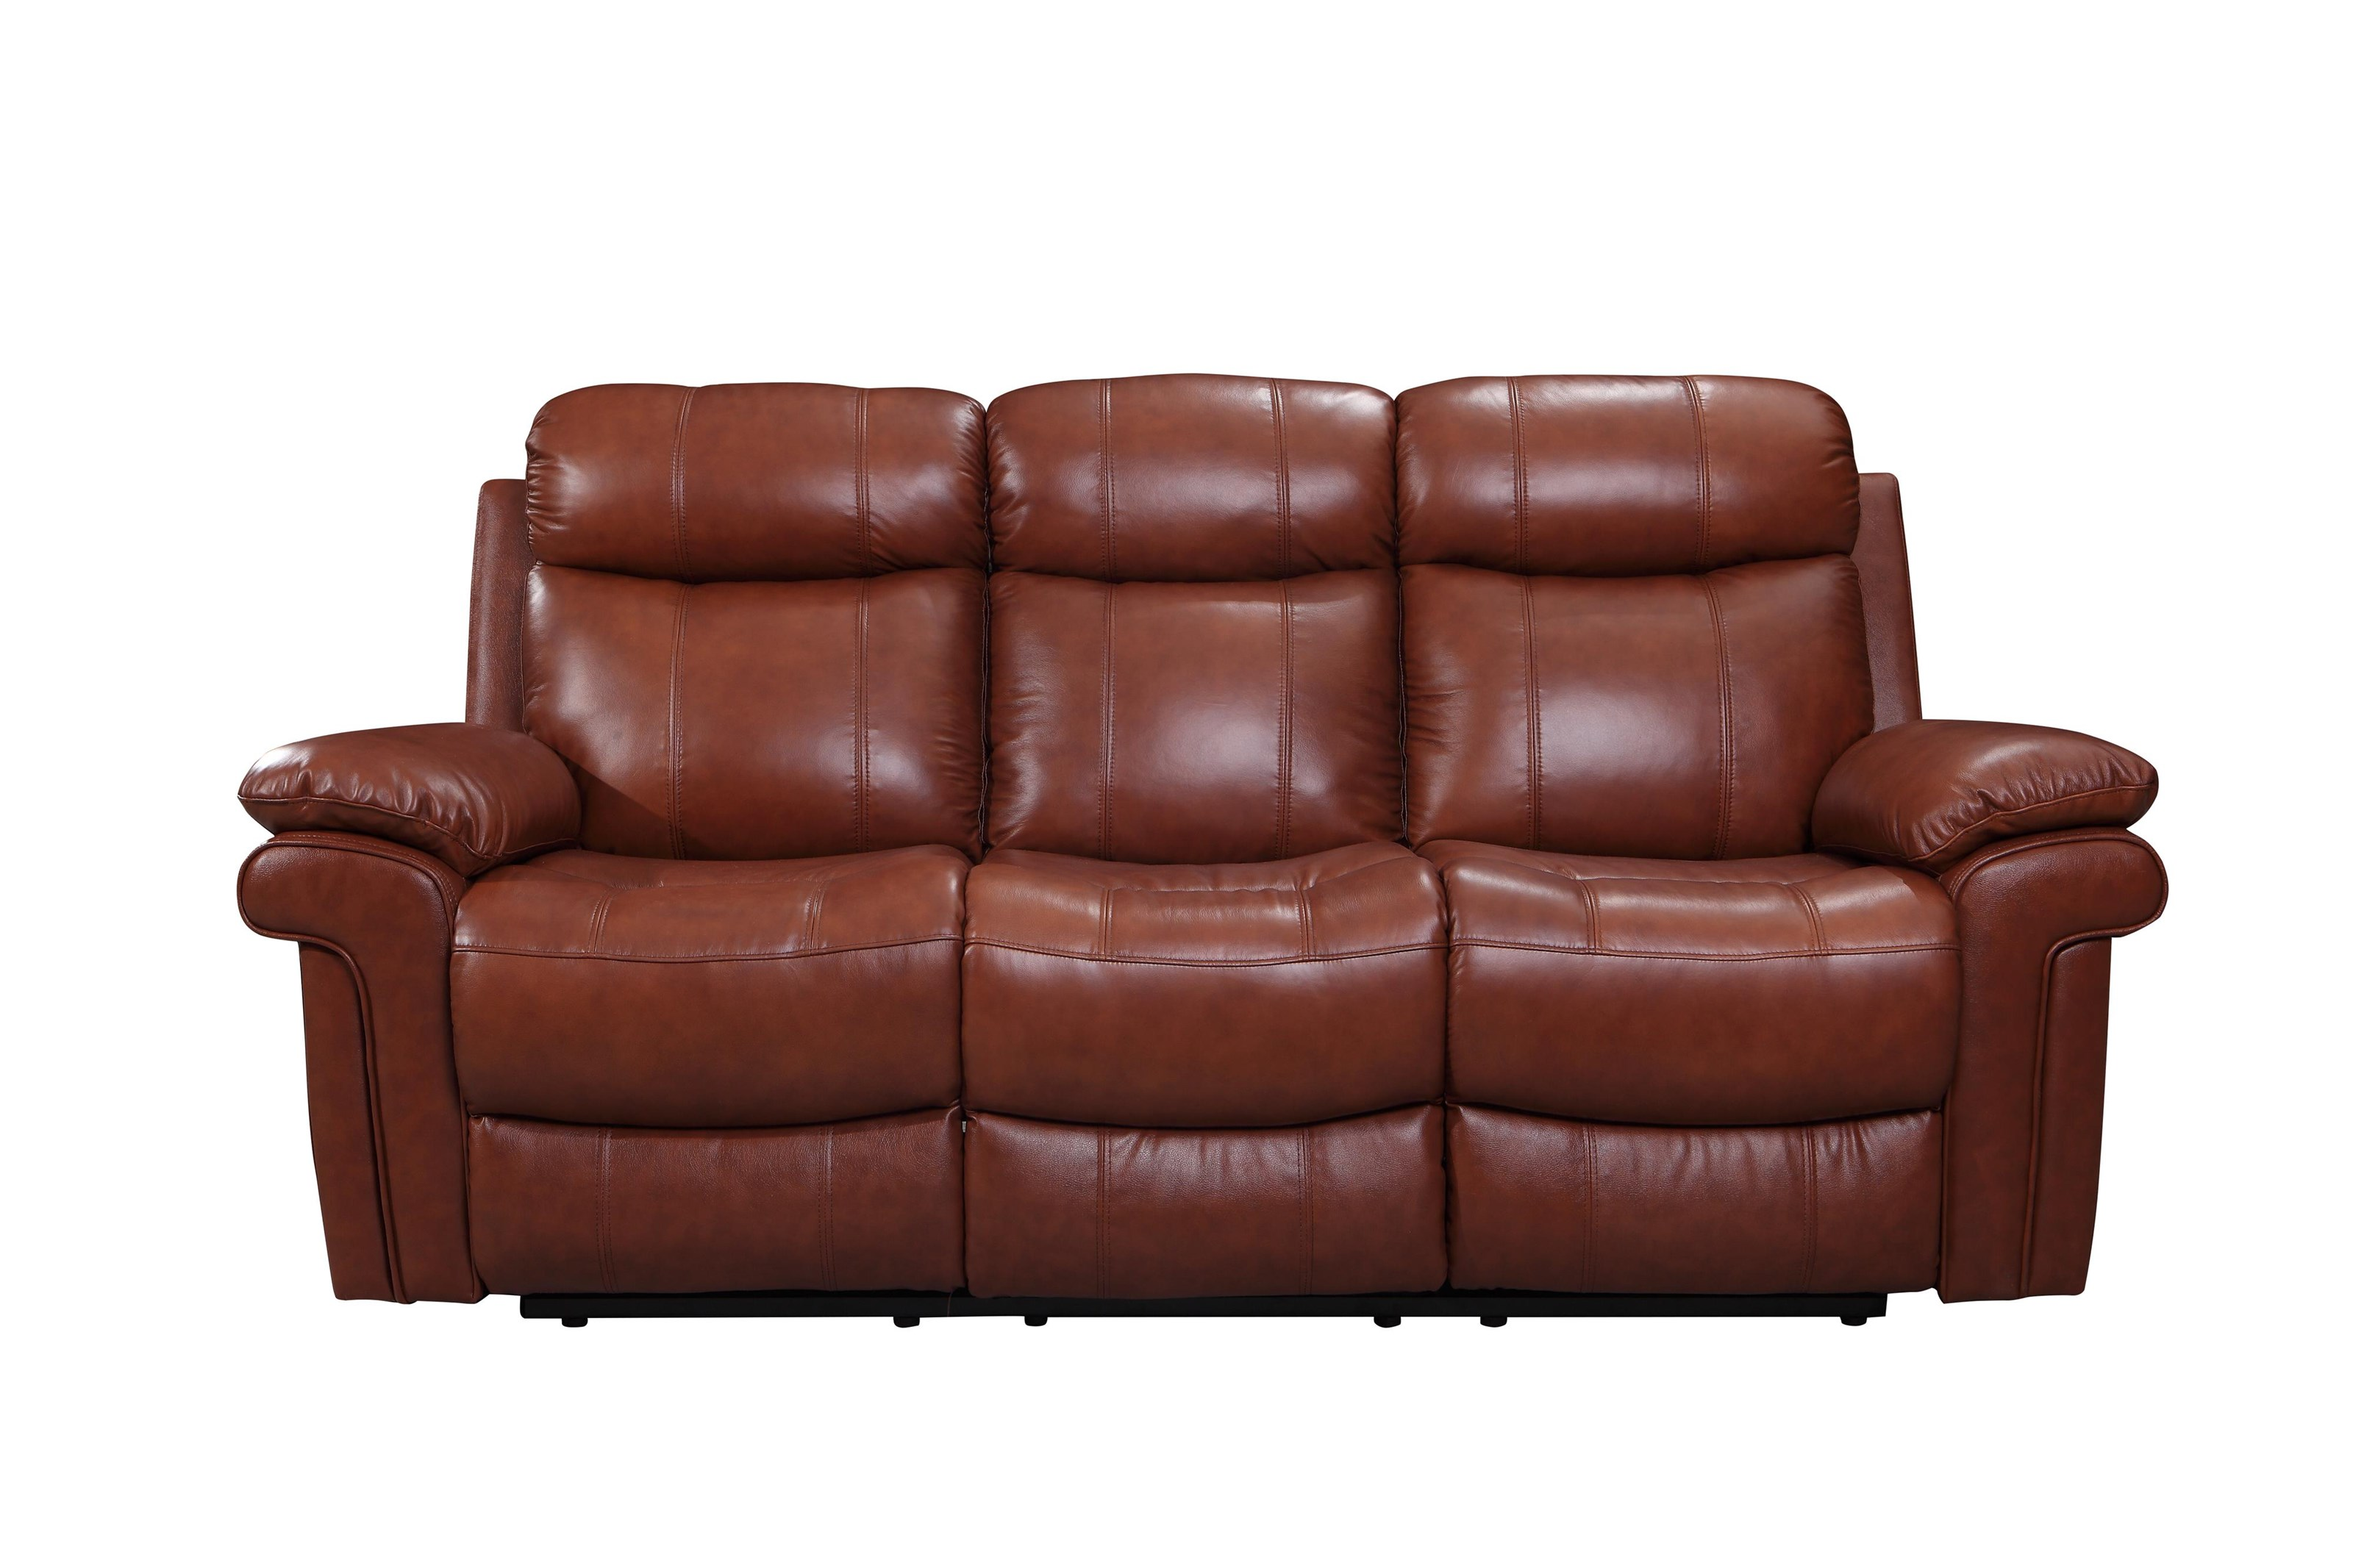 2117-2201 2117 by Leather Italia USA at Wayside Furniture